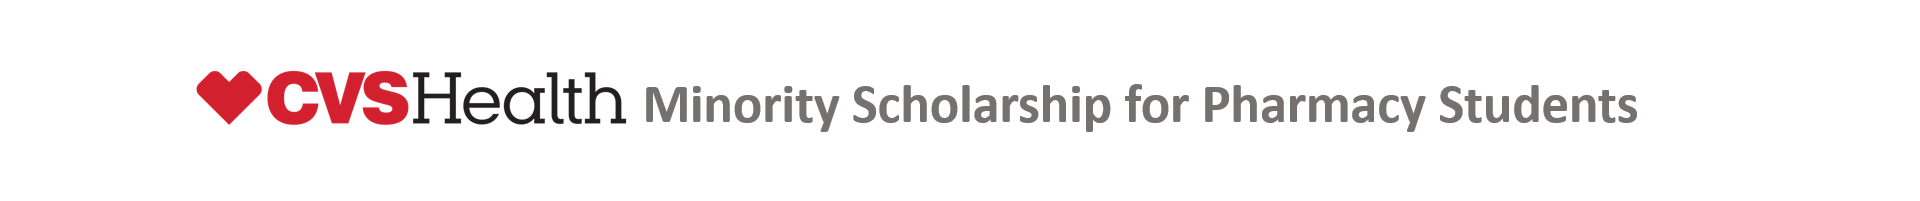 CVS Health Minority Scholarship for Pharmacy Students Event Banner